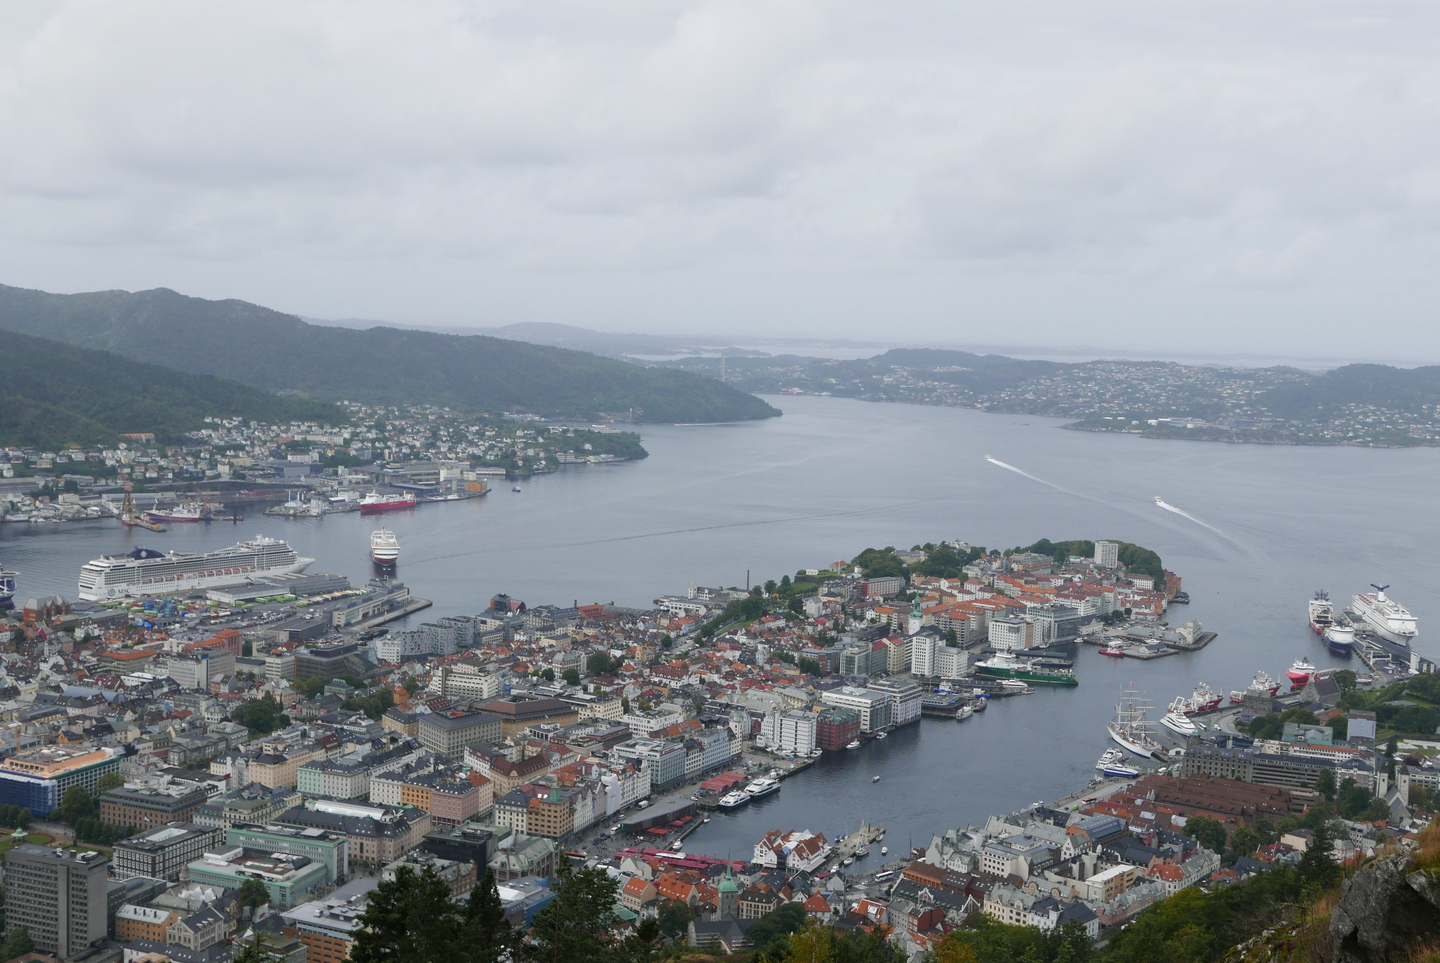 View of Bergen from above